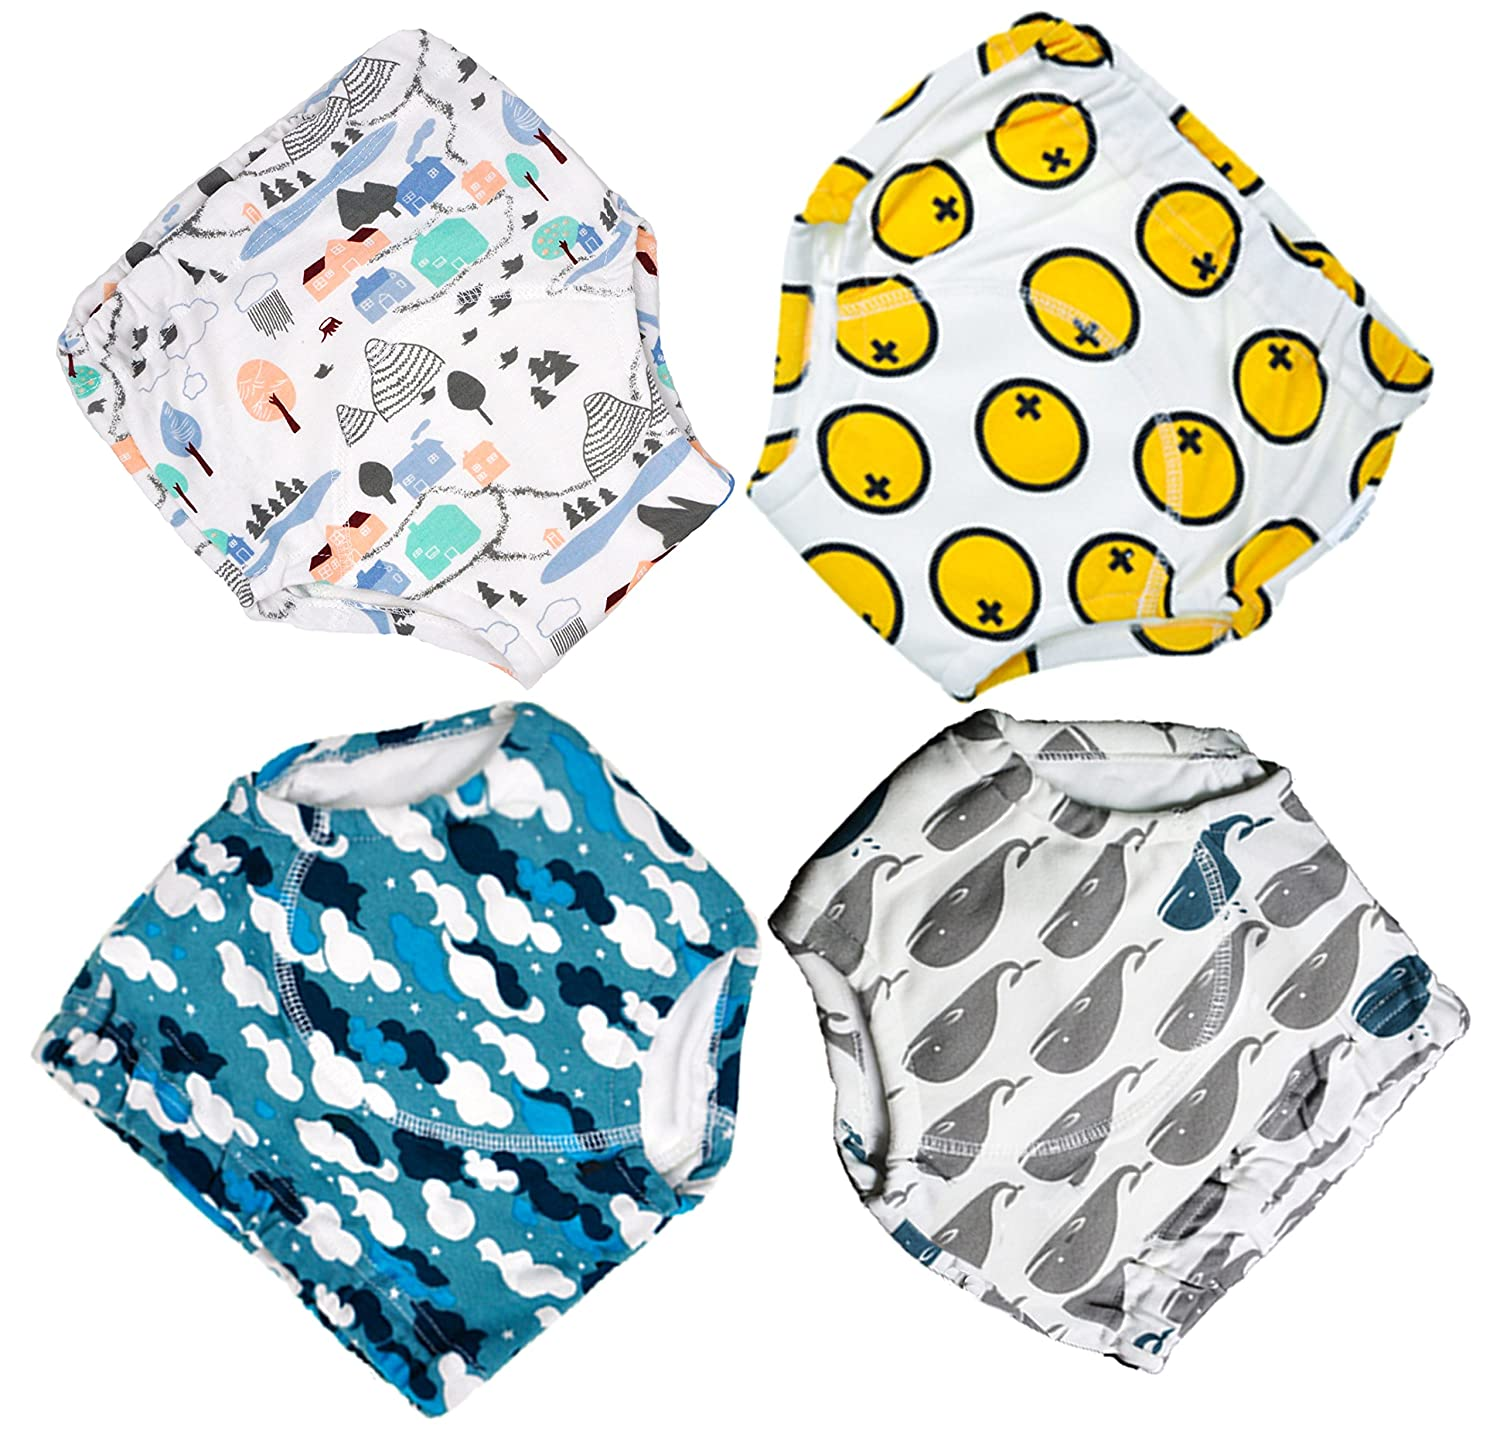 Toddler training pants 4 pack potty training unferwwar for baby boys, cotton trainging seat for potty training MooMoo Baby Collection